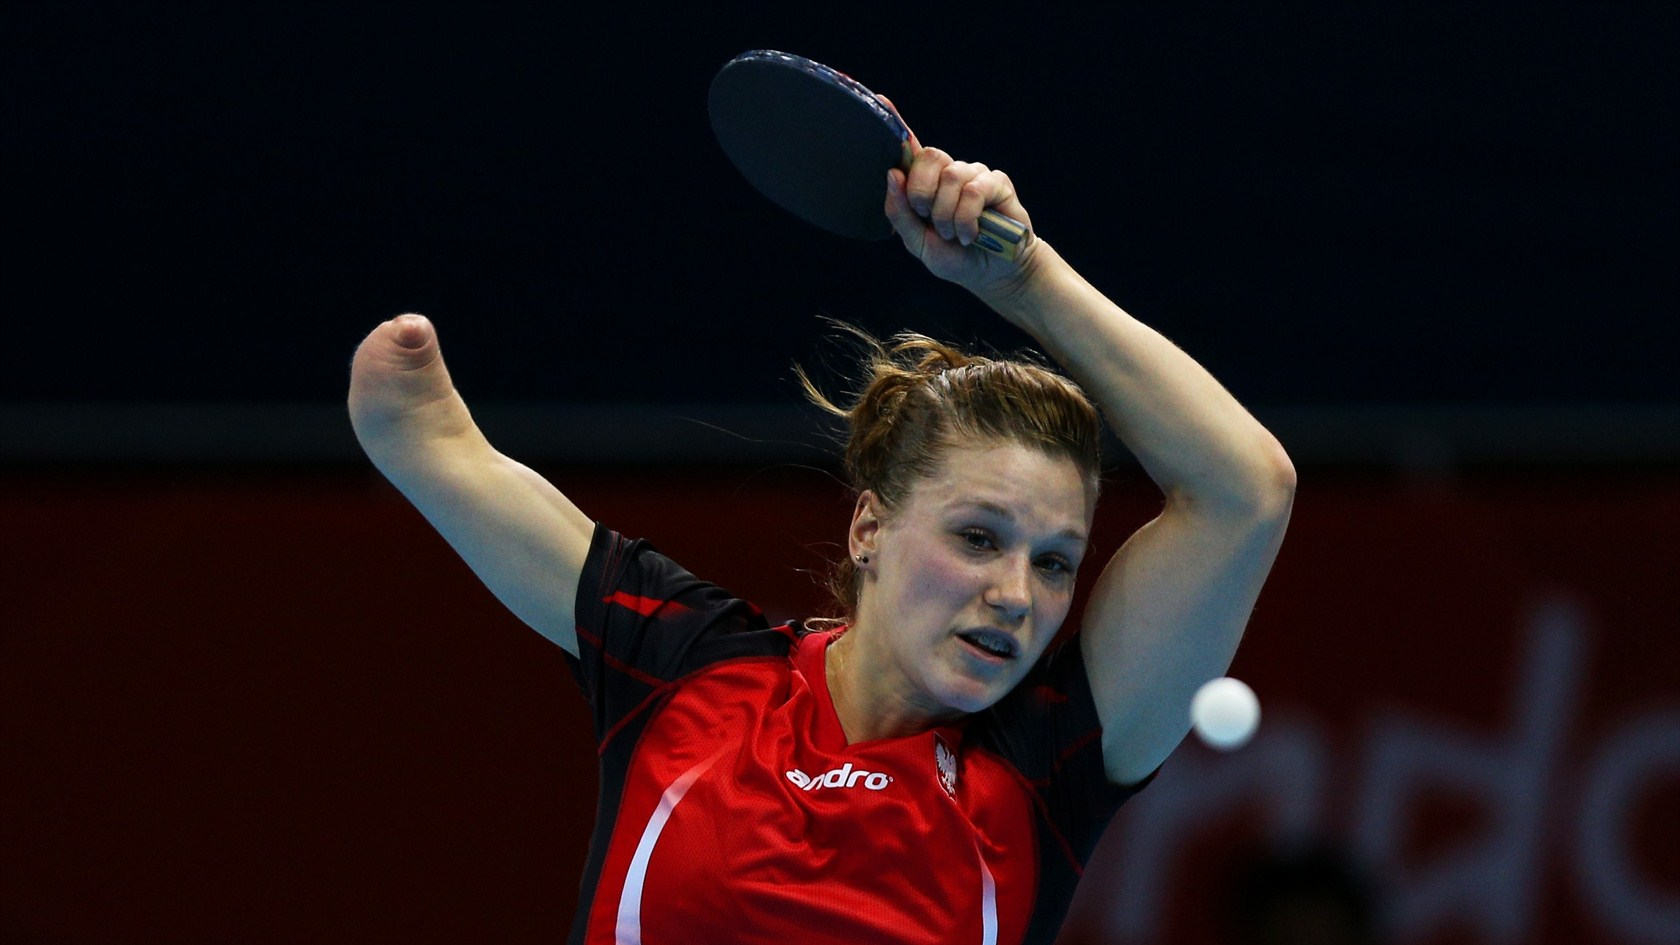 snapshot of Natalia Partyka playing Table Tennis Wallpaper HD 1680x945